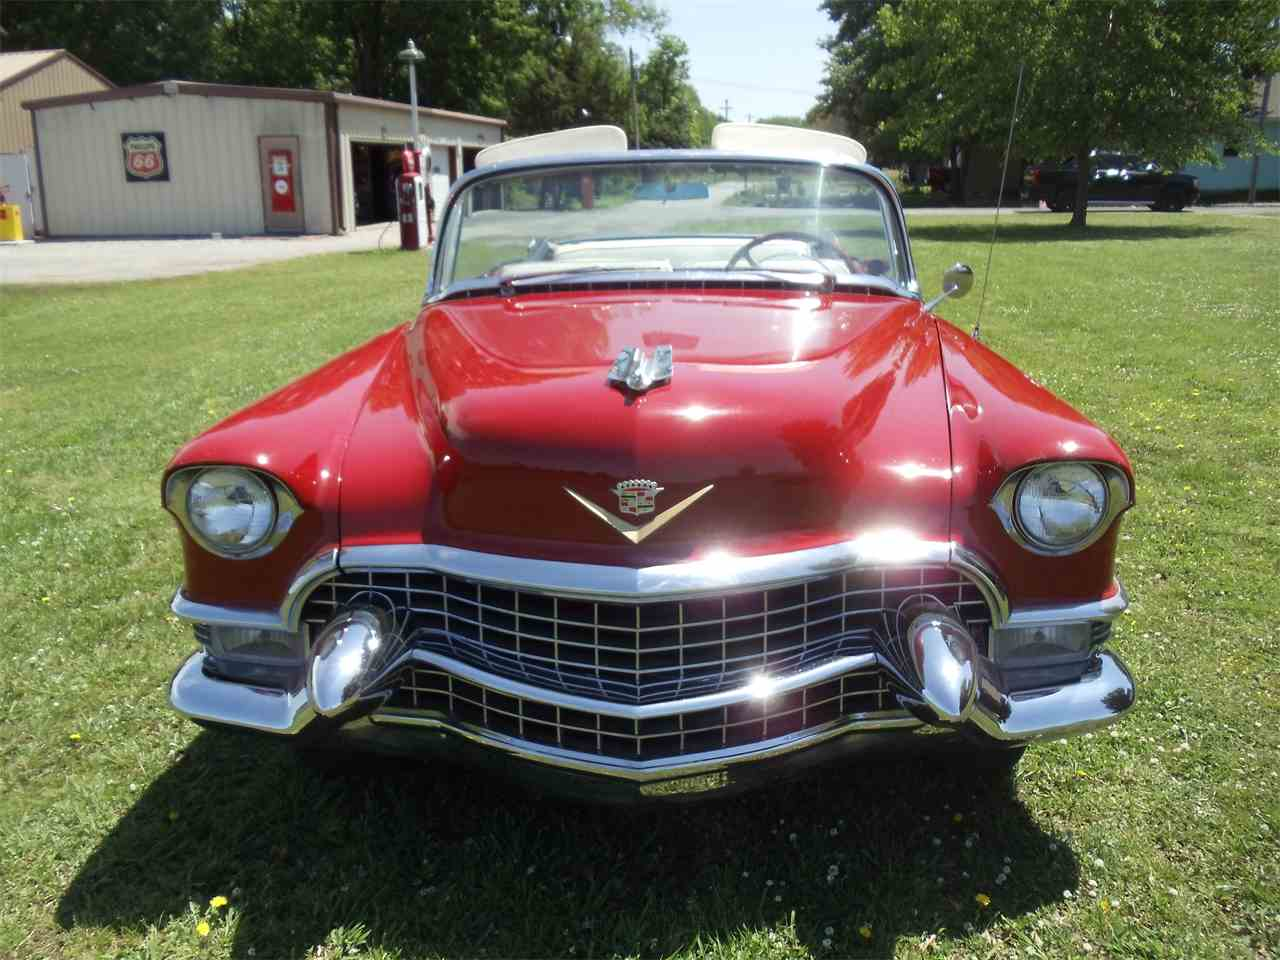 Large Picture of 1955 Cadillac Eldorado Offered by a Private Seller - L6V7